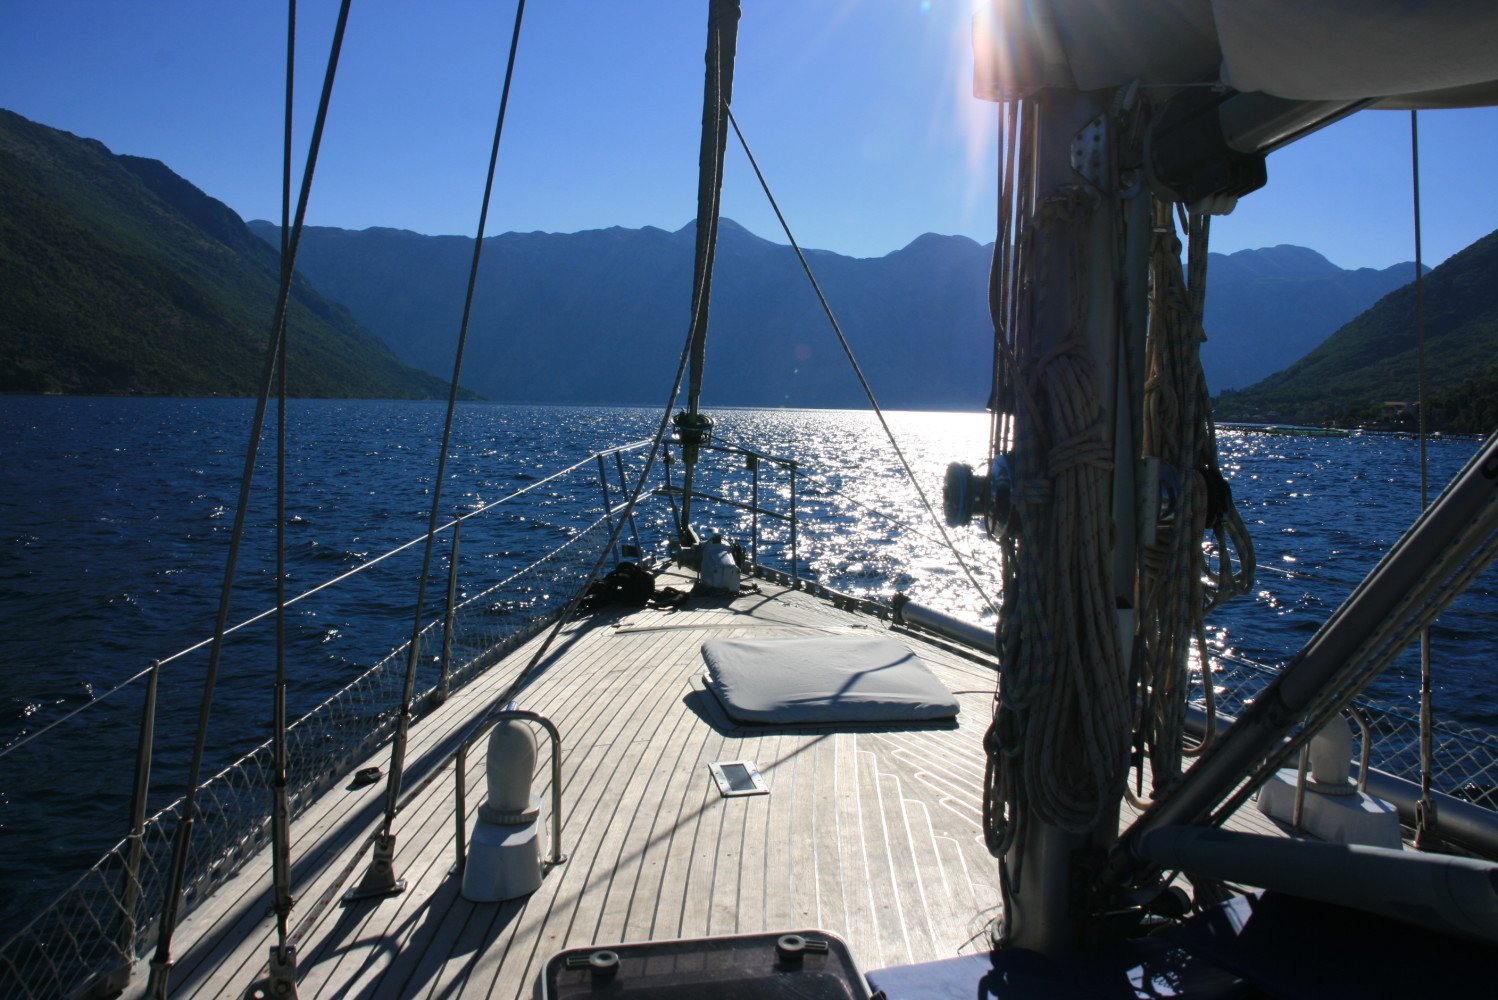 Day trip in Montenegro from Dubrovnik